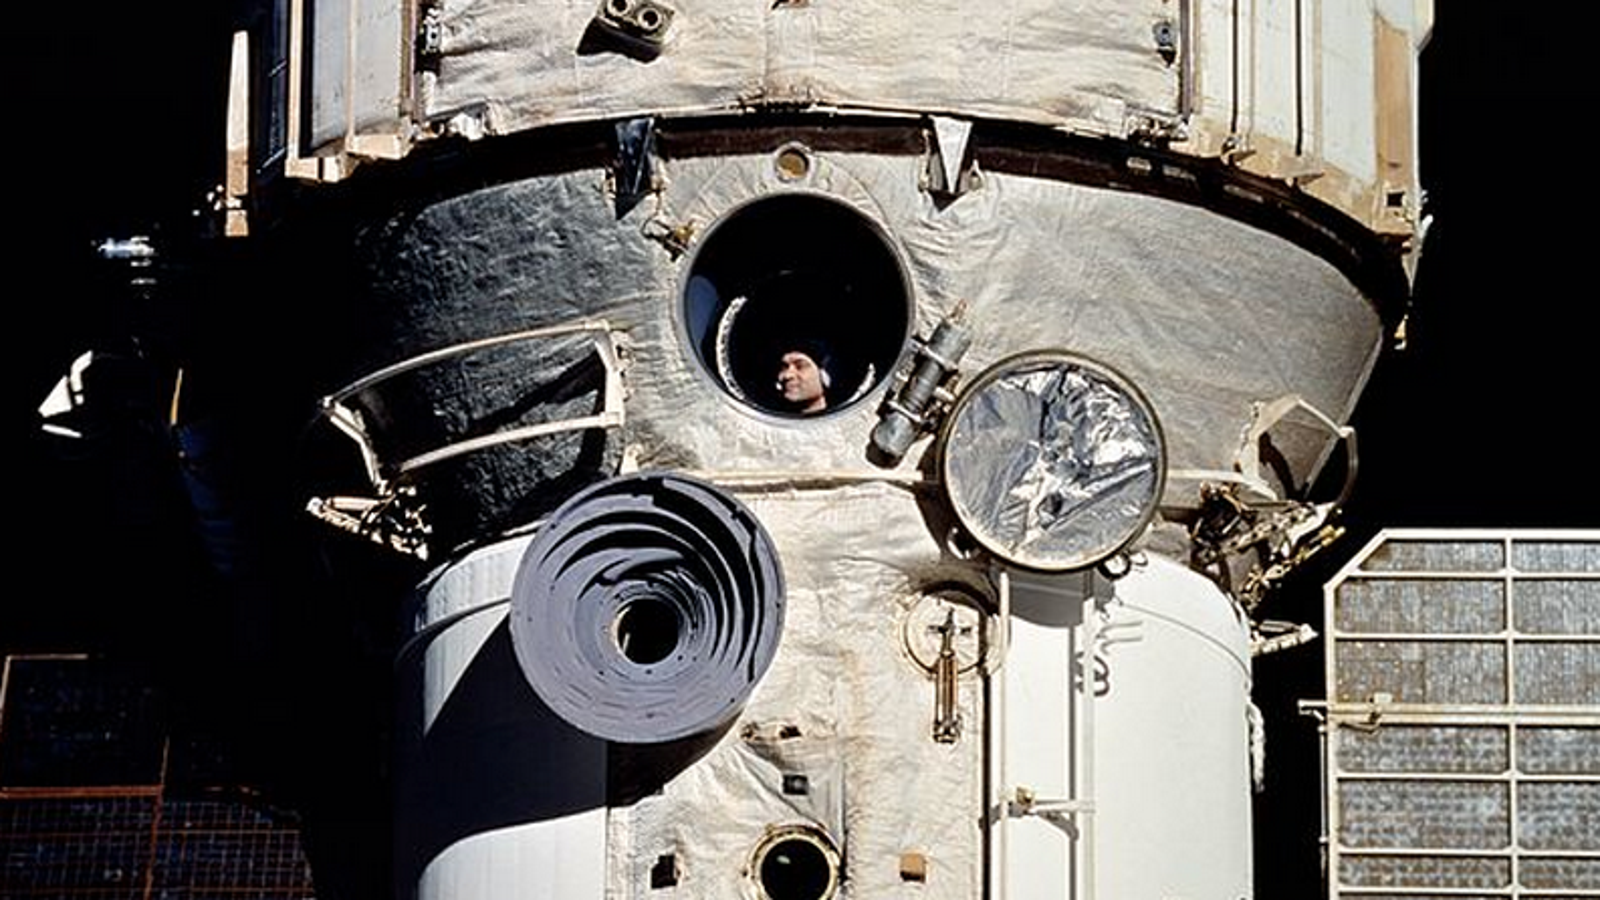 astronaut who stayed in space the longest - photo #22